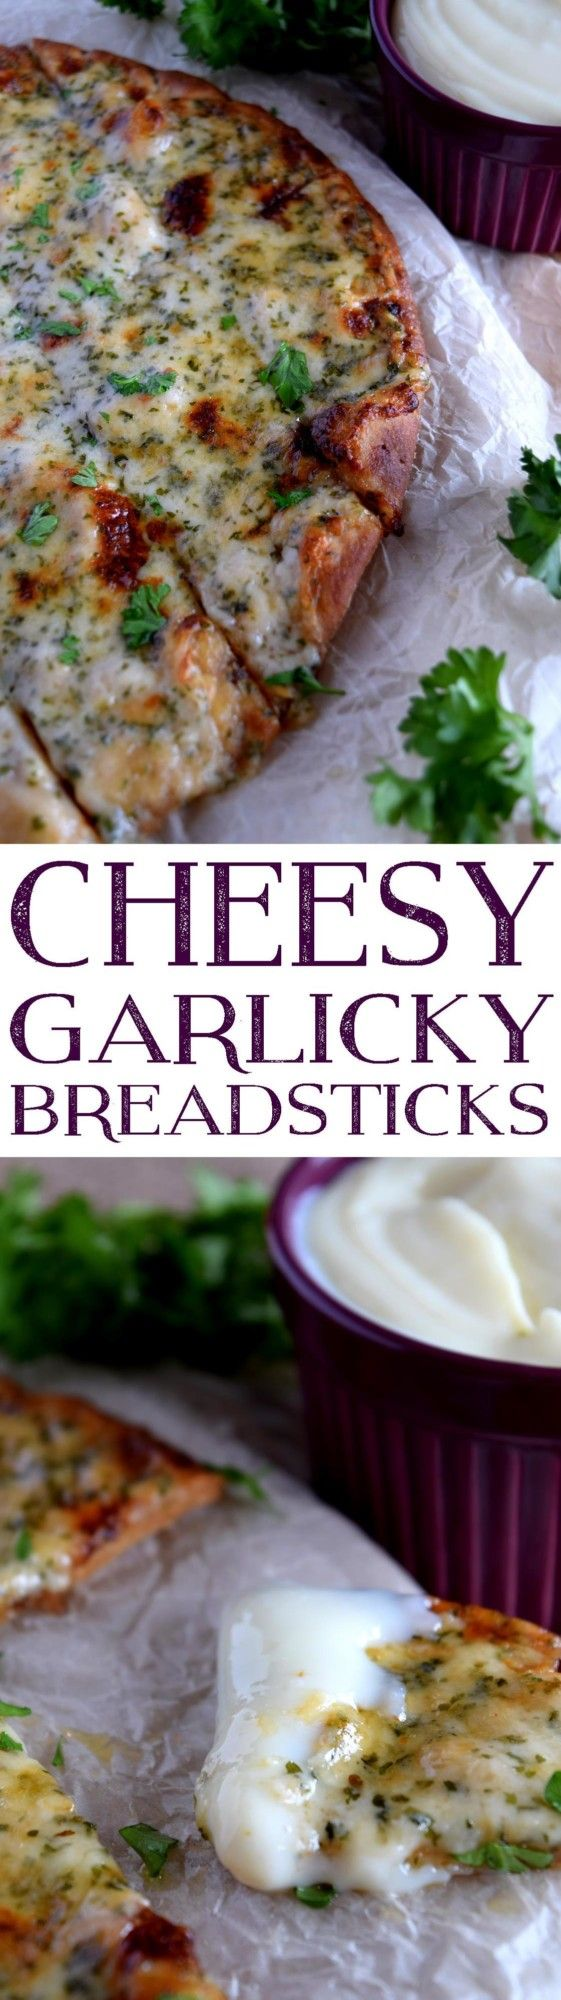 Cheesy Garlicky Breadsticks - Lord Byron's Kitchen